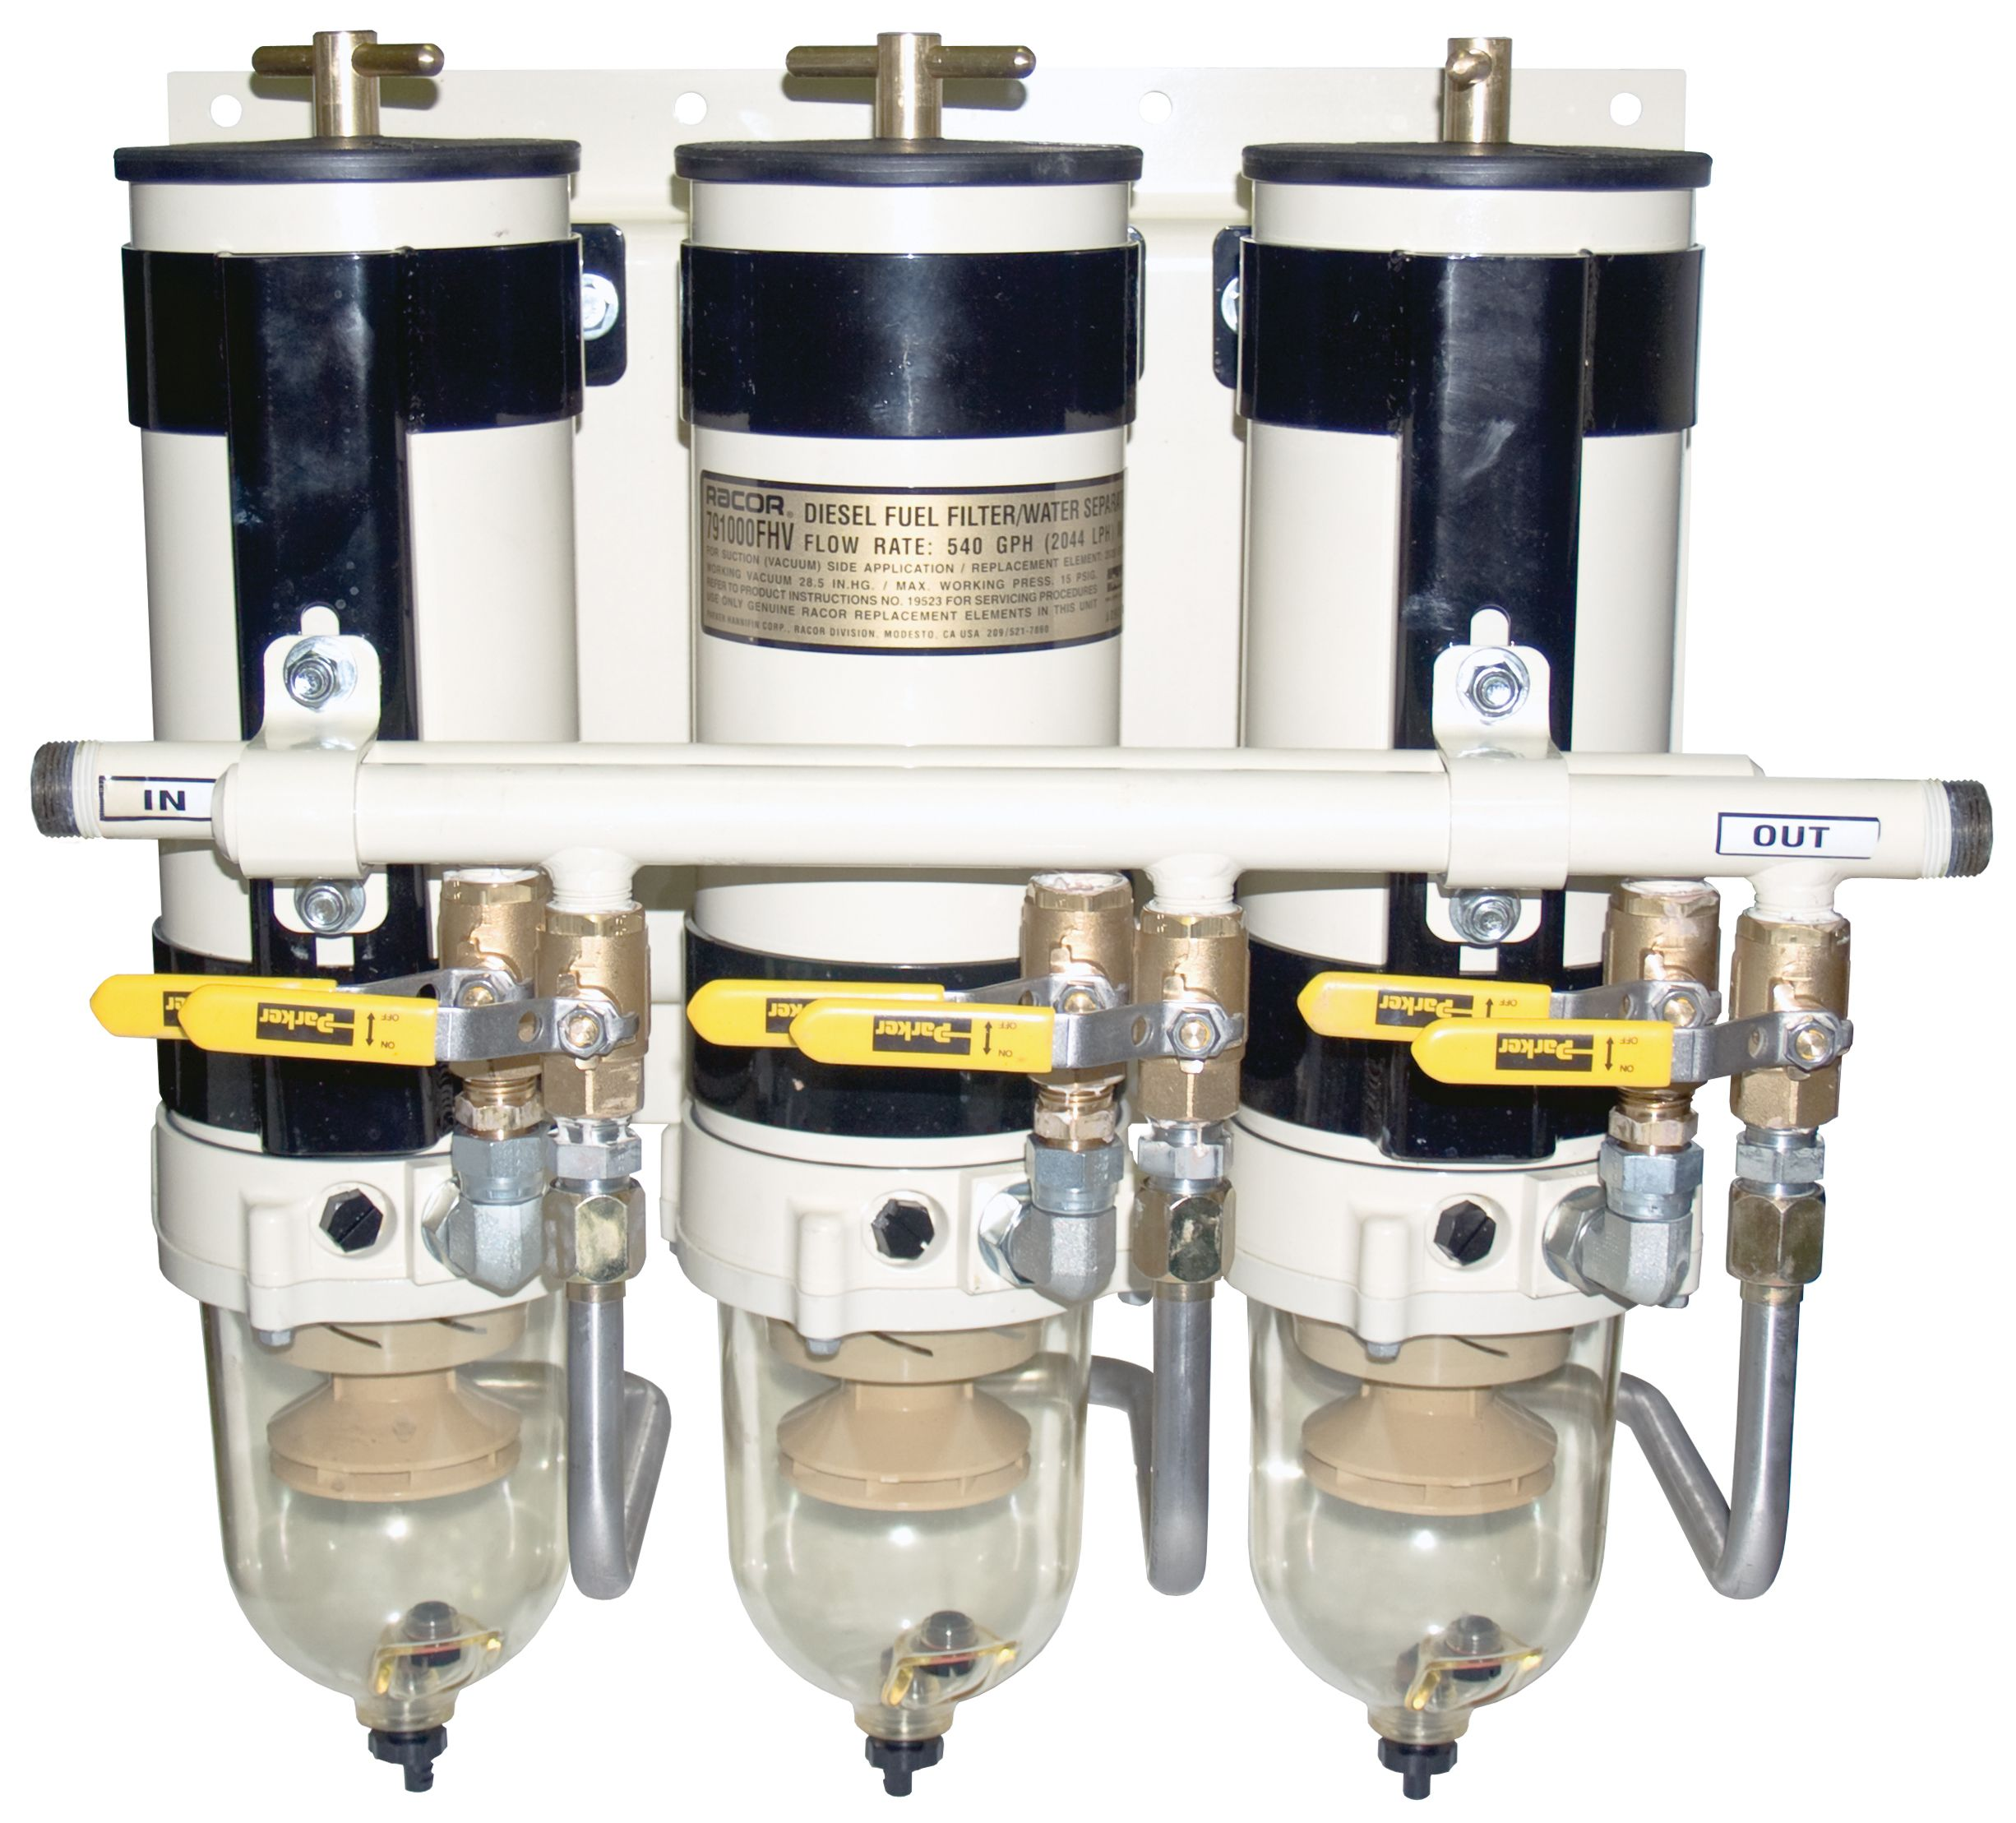 Racor 791000fhv Series Triple Turbine Assembly W Ind Filter Shut Diesel Fuel Housing Off 2 10 30 Micron